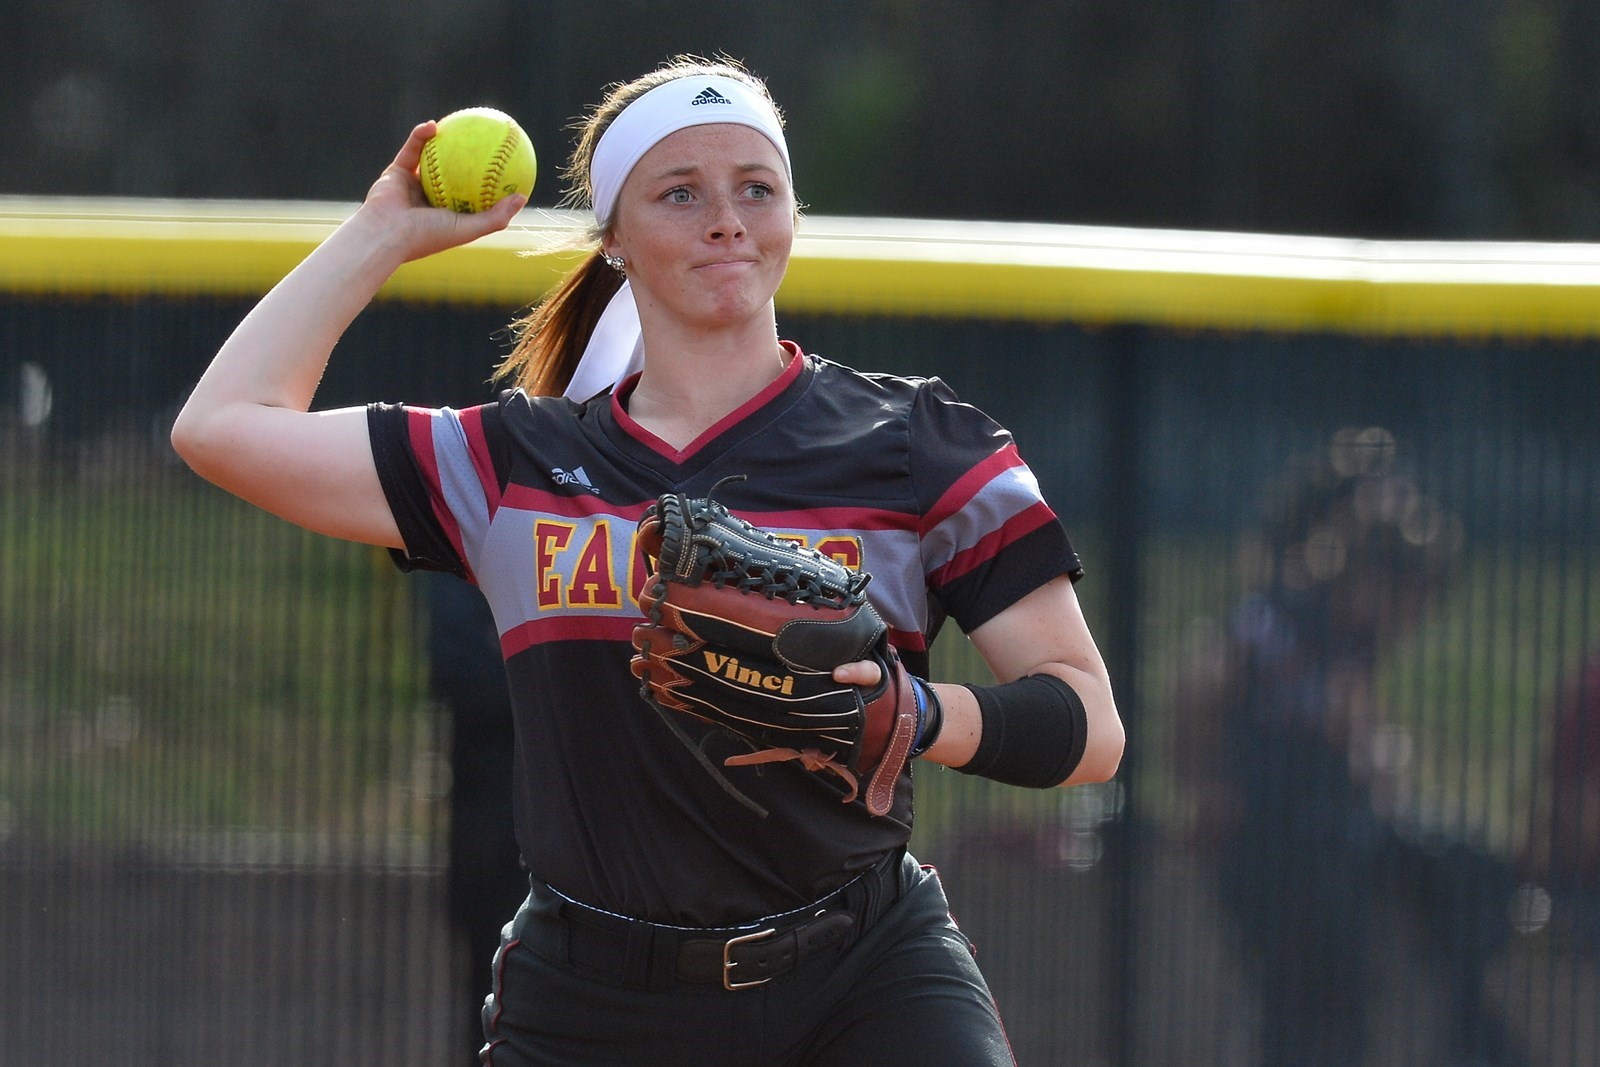 Pitching, Westbrooks Home Run Lead Eagle Softball To 1-0 Win Over ...